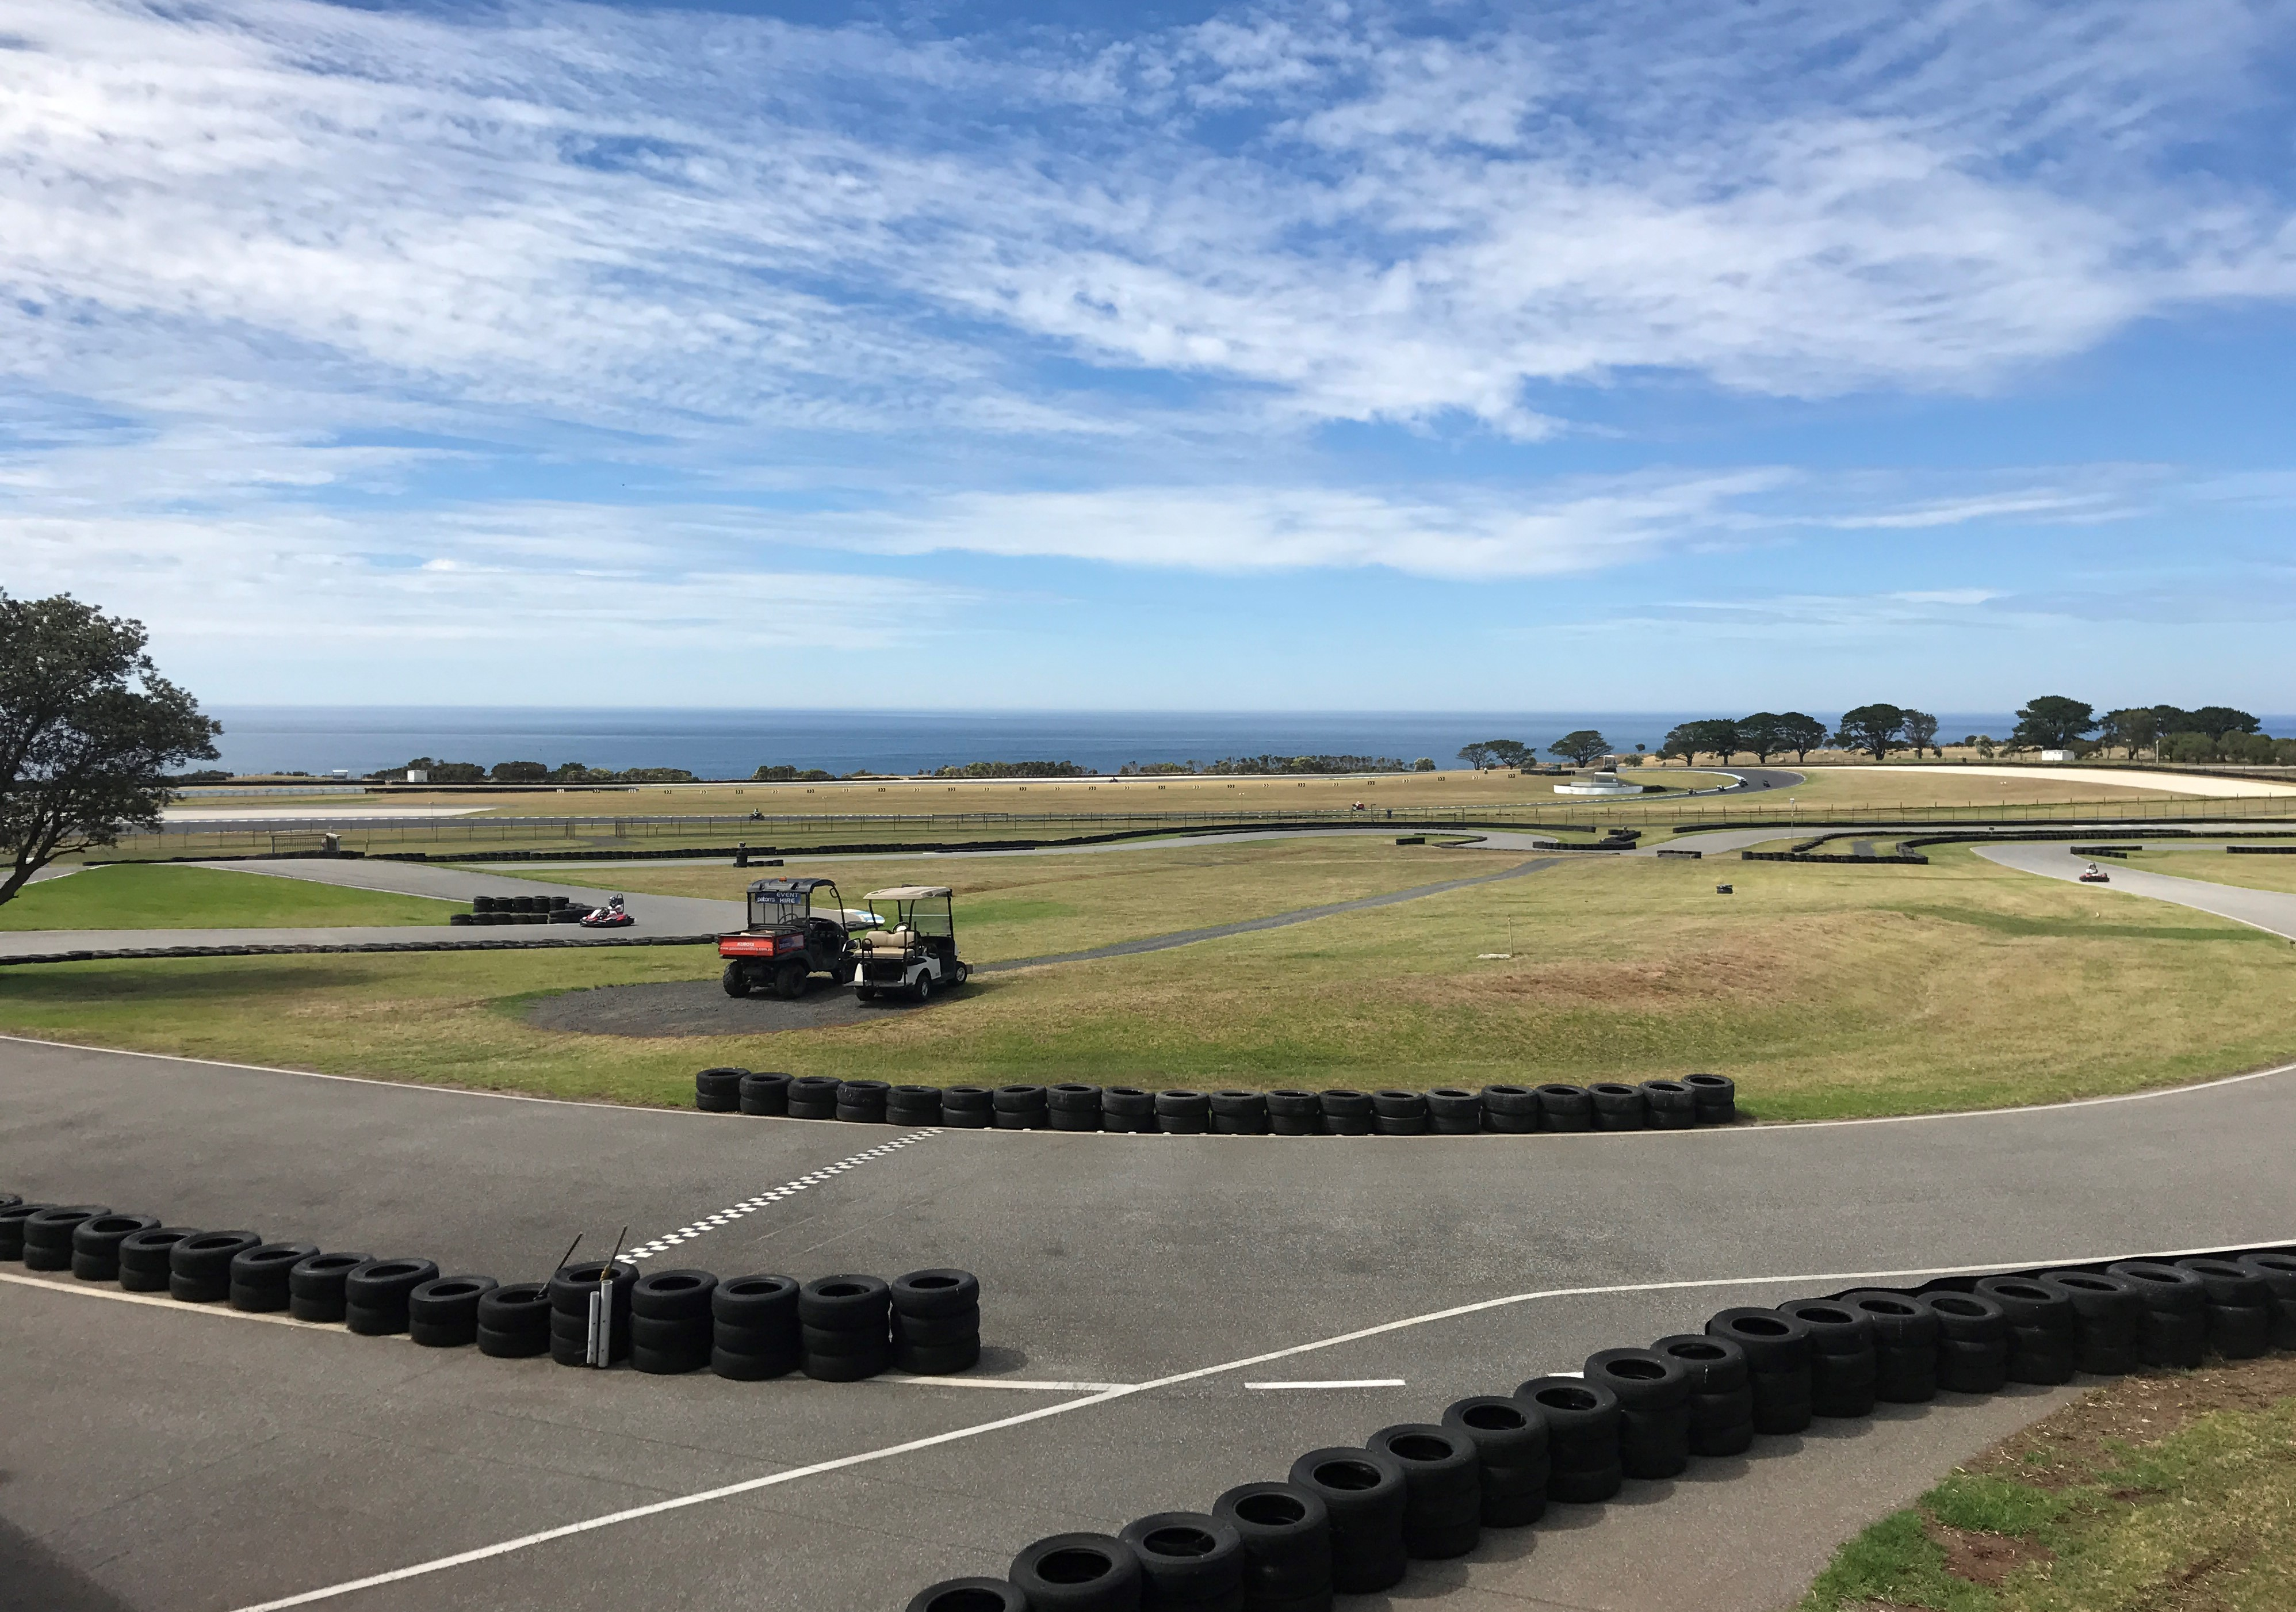 Circuito Karting : Go karting at phillip island grand prix circuit melbourne by